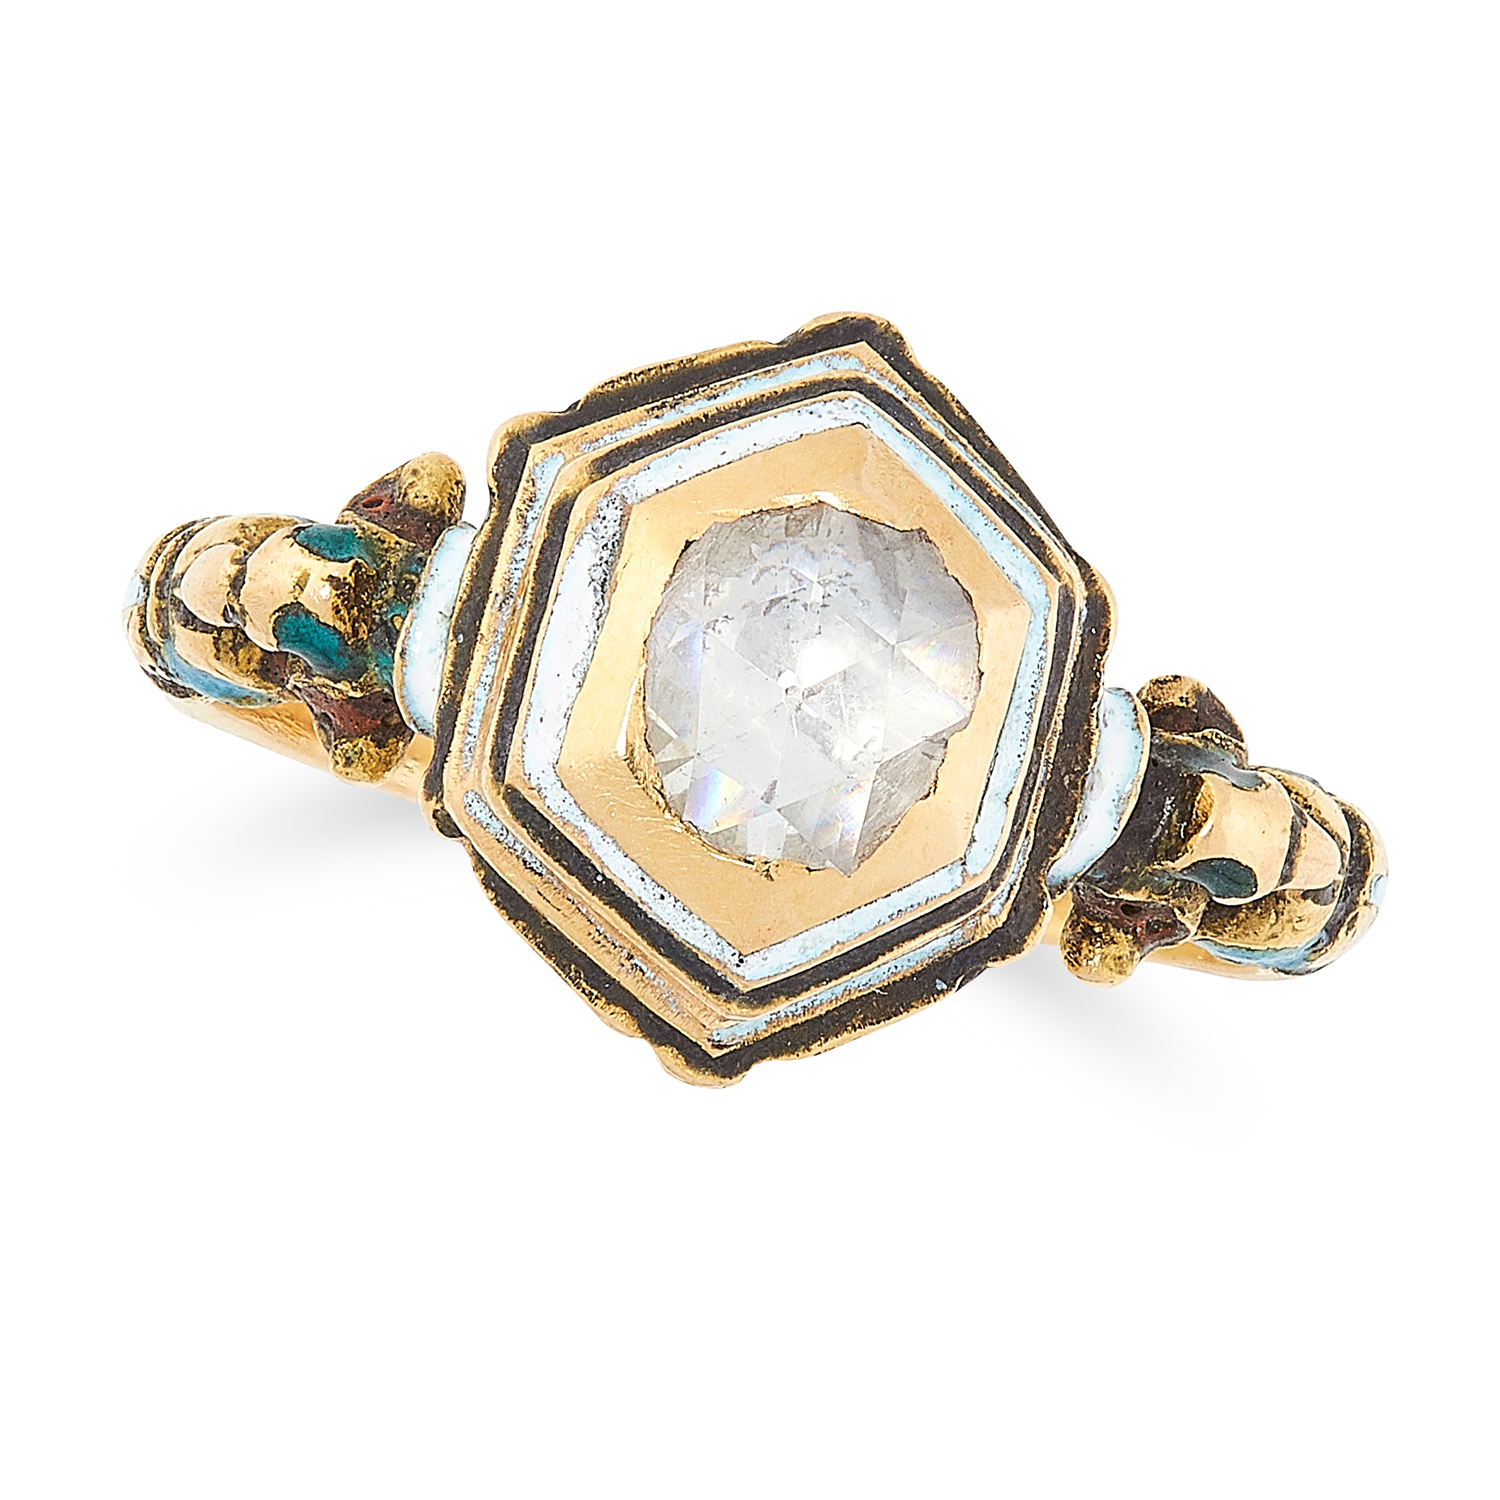 AN ANTIQUE DIAMOND AND ENAMEL RING, 17TH OR 18TH CENTURY in high carat yellow gold, set with a